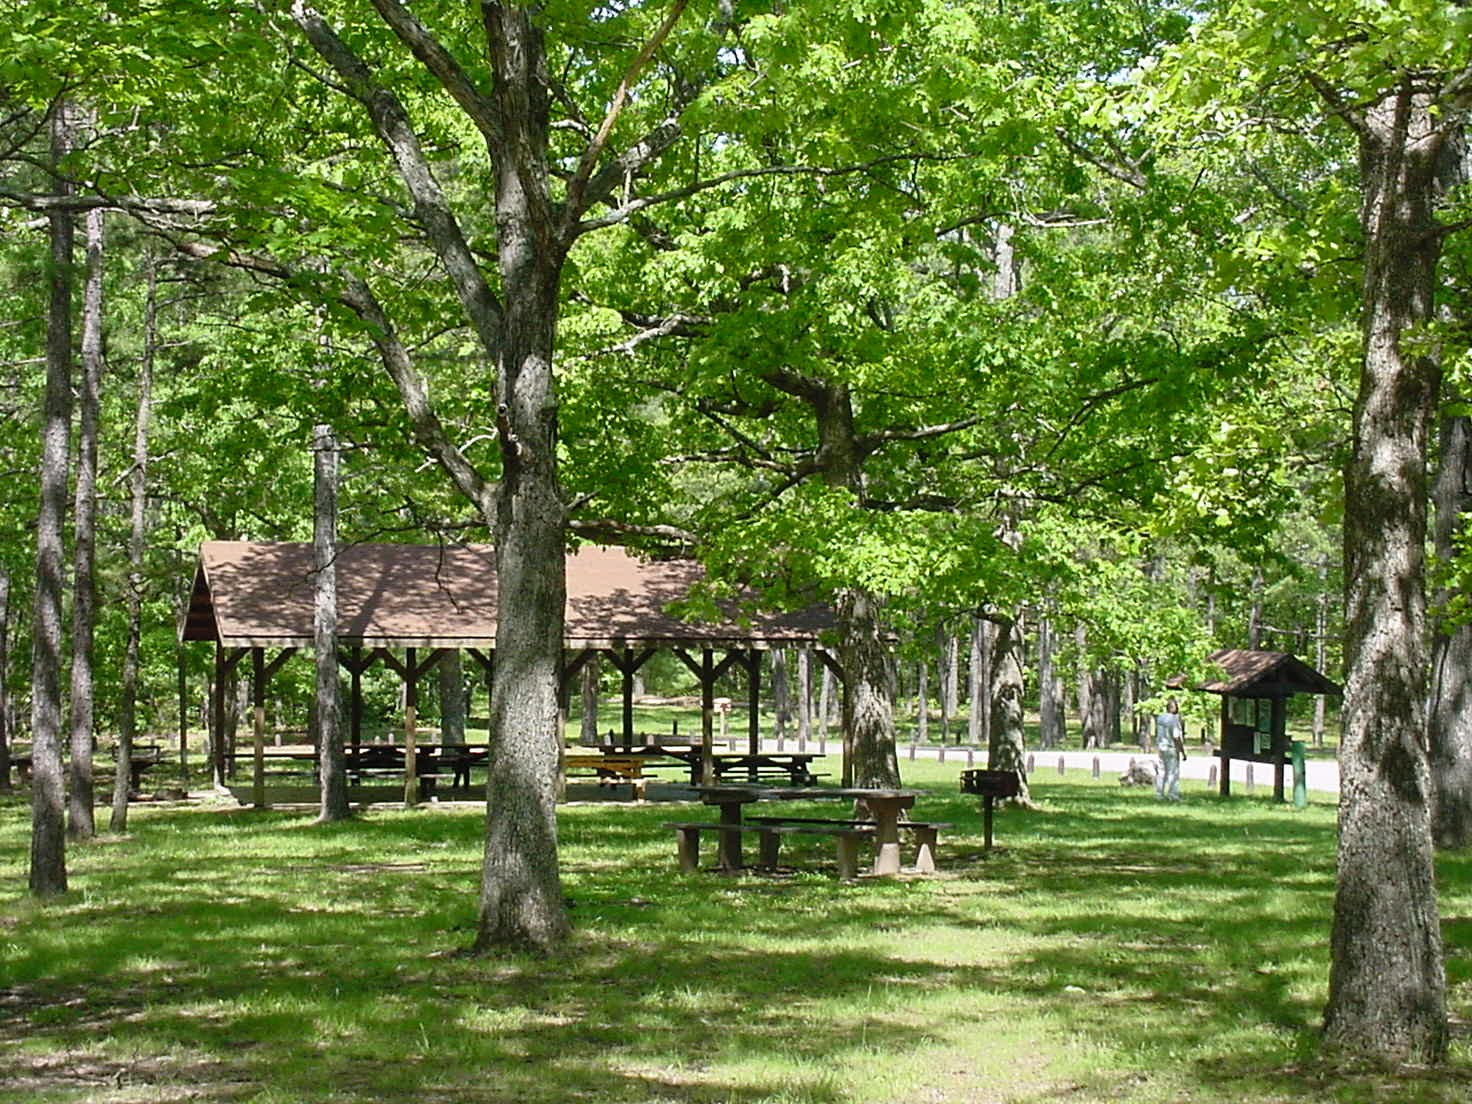 View of the Picnic Pavilion at Berryman Recreation Area